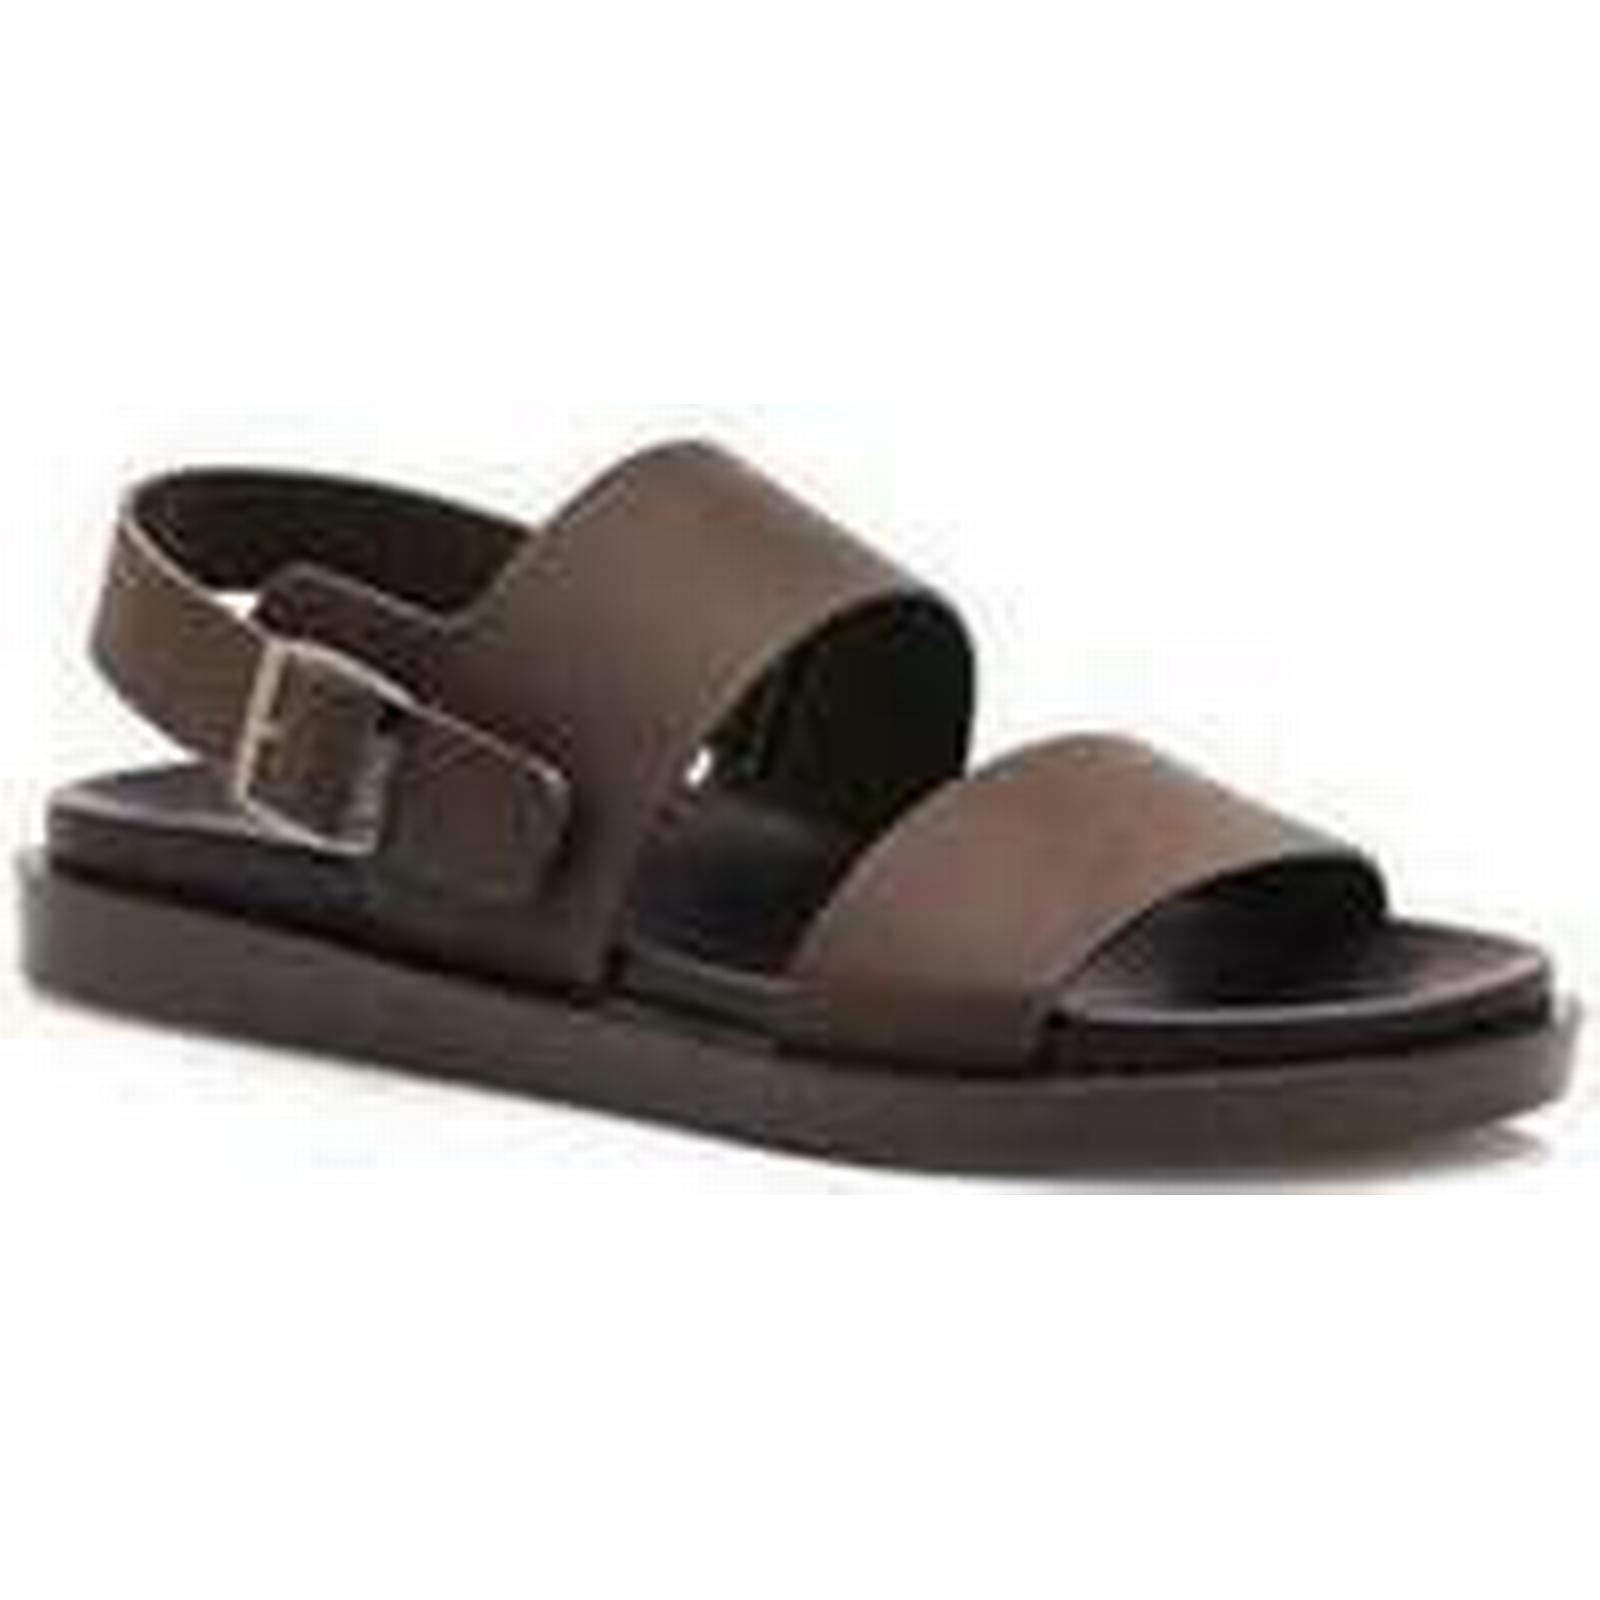 Spartoo.co.uk MTNG CHANCLA PU in VAQUETA BROWN men's Sandals in PU Brown 8a6bc3